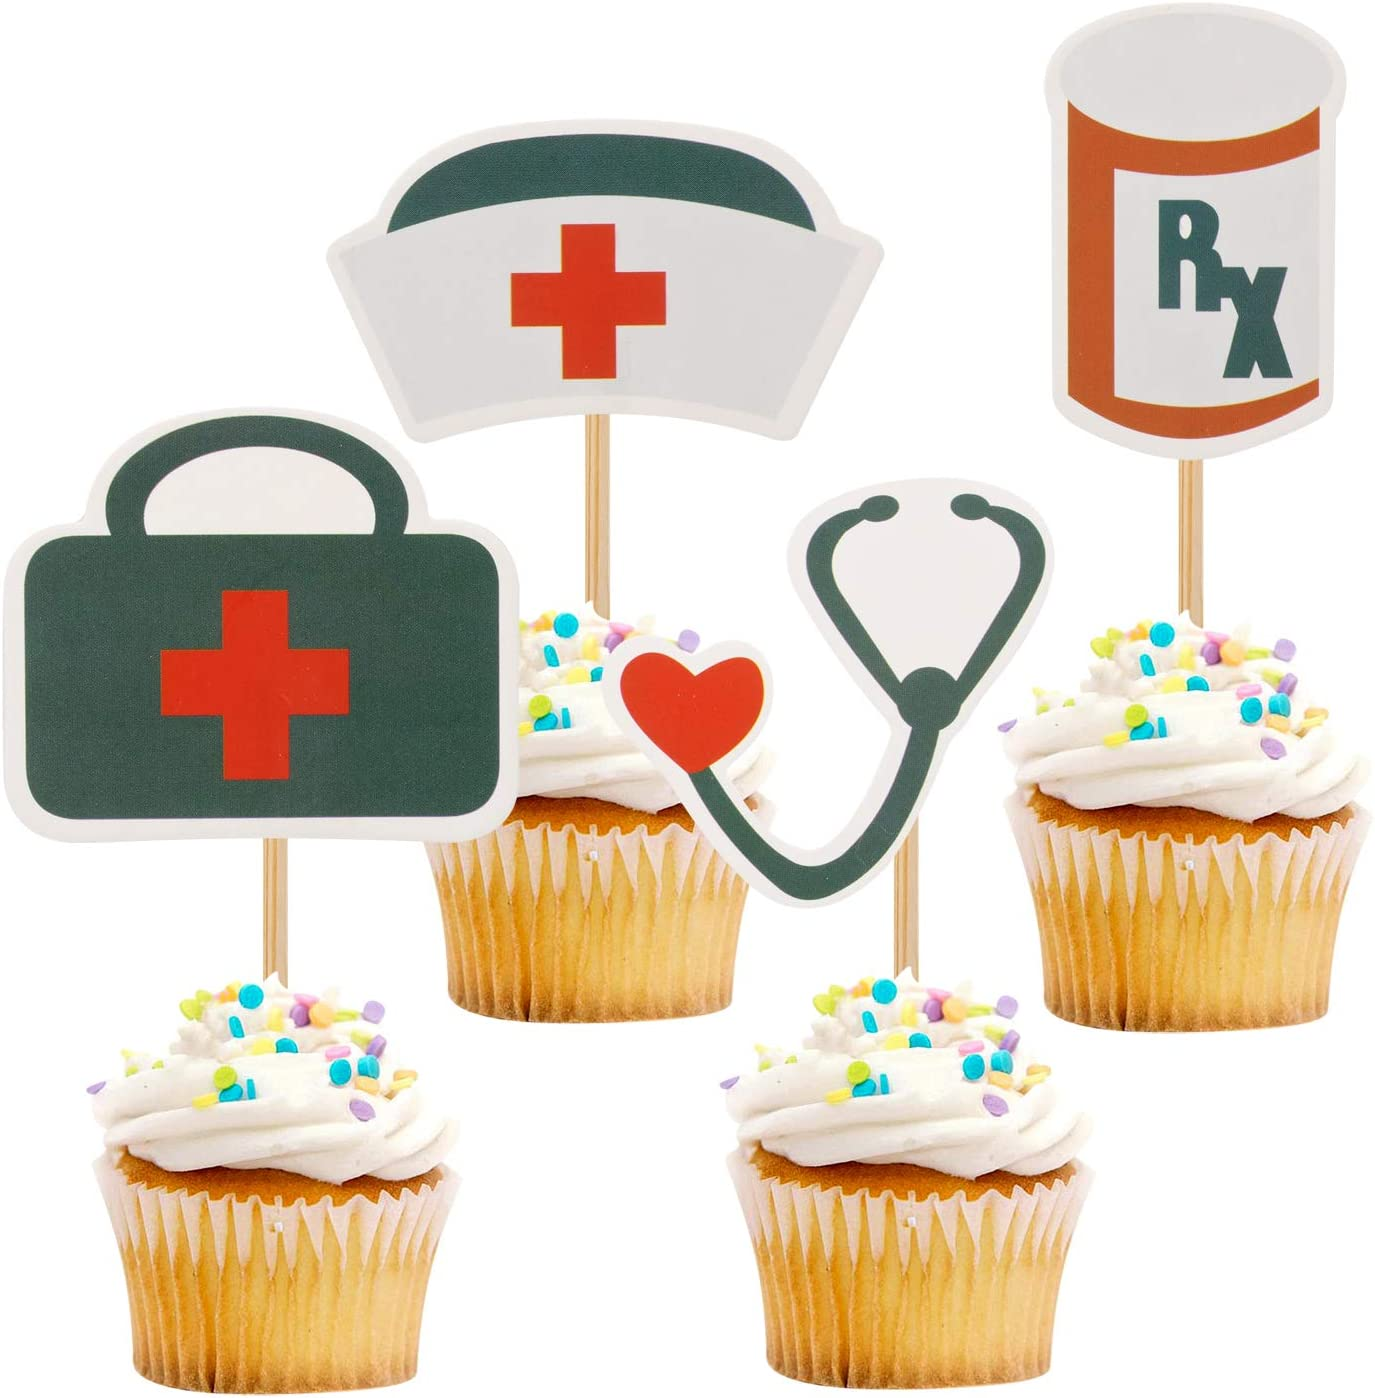 iMagitek 24 Pack Nursing Cupcake Toppers Decorations, Nurse Graduation Cupcake Toppers for Doctor & Nurse Graduation Party, Birthday Party